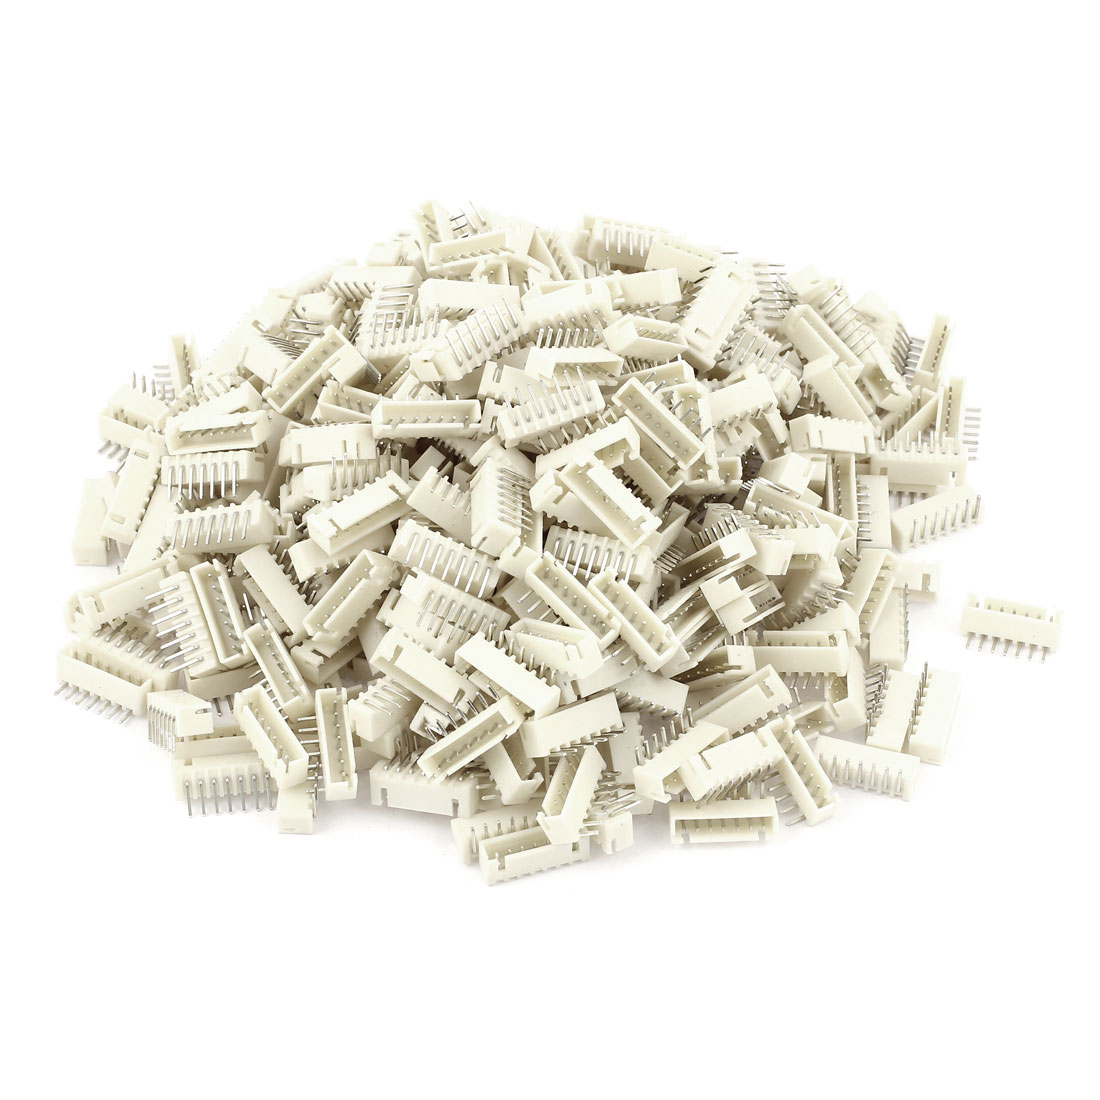 390pcs 2.54mm Pitch Right Angle 7 Pins XH Header Socket Male JST Connector